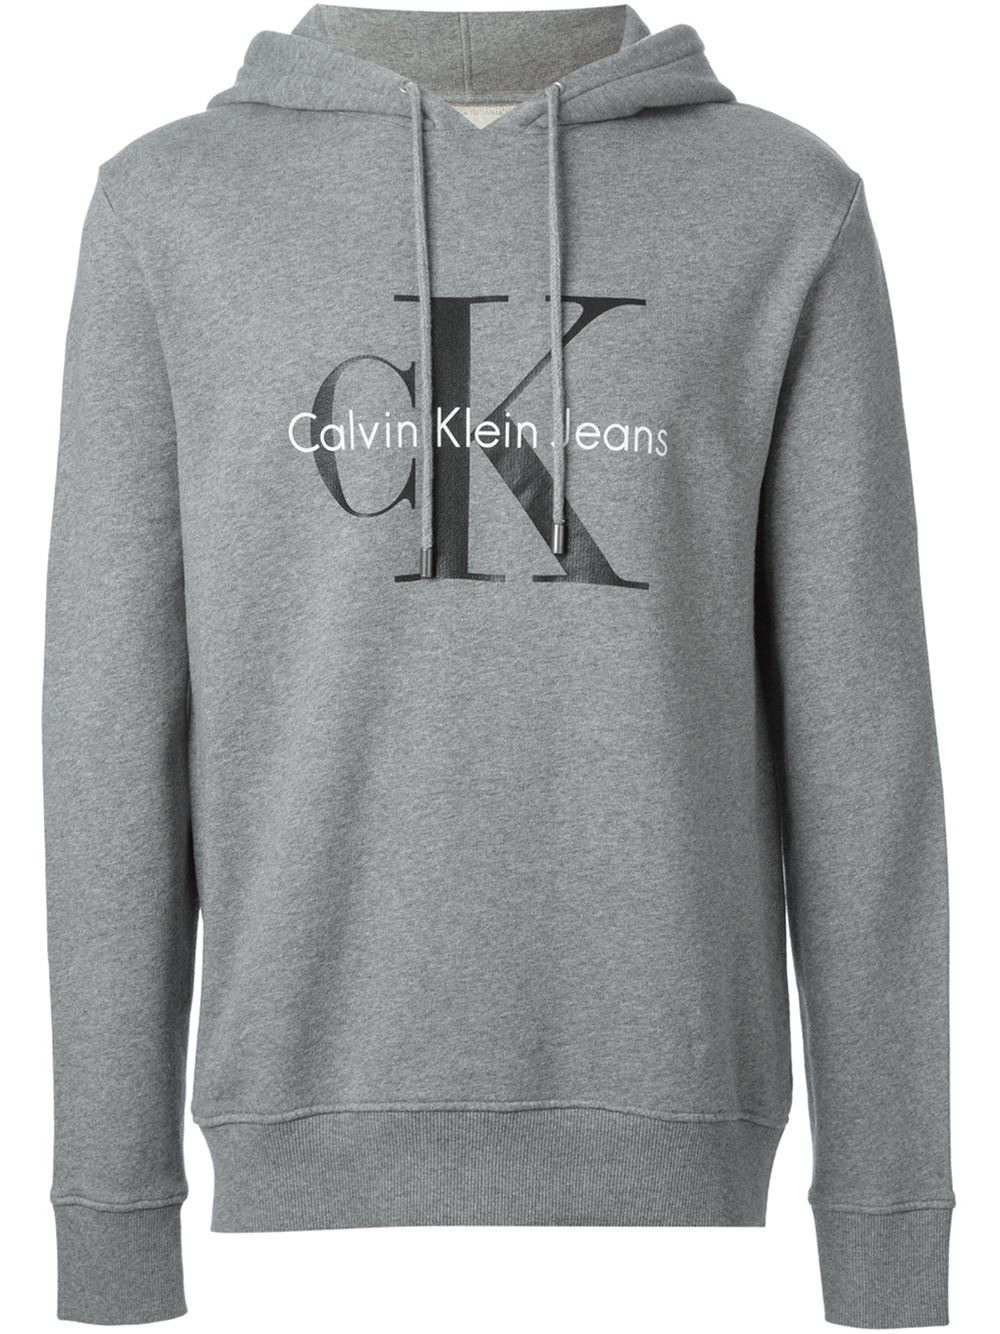 Nike Pullover Quarter Zip Calvin Klein Jeans Logo Print Hoodie In Gray For Men Grey